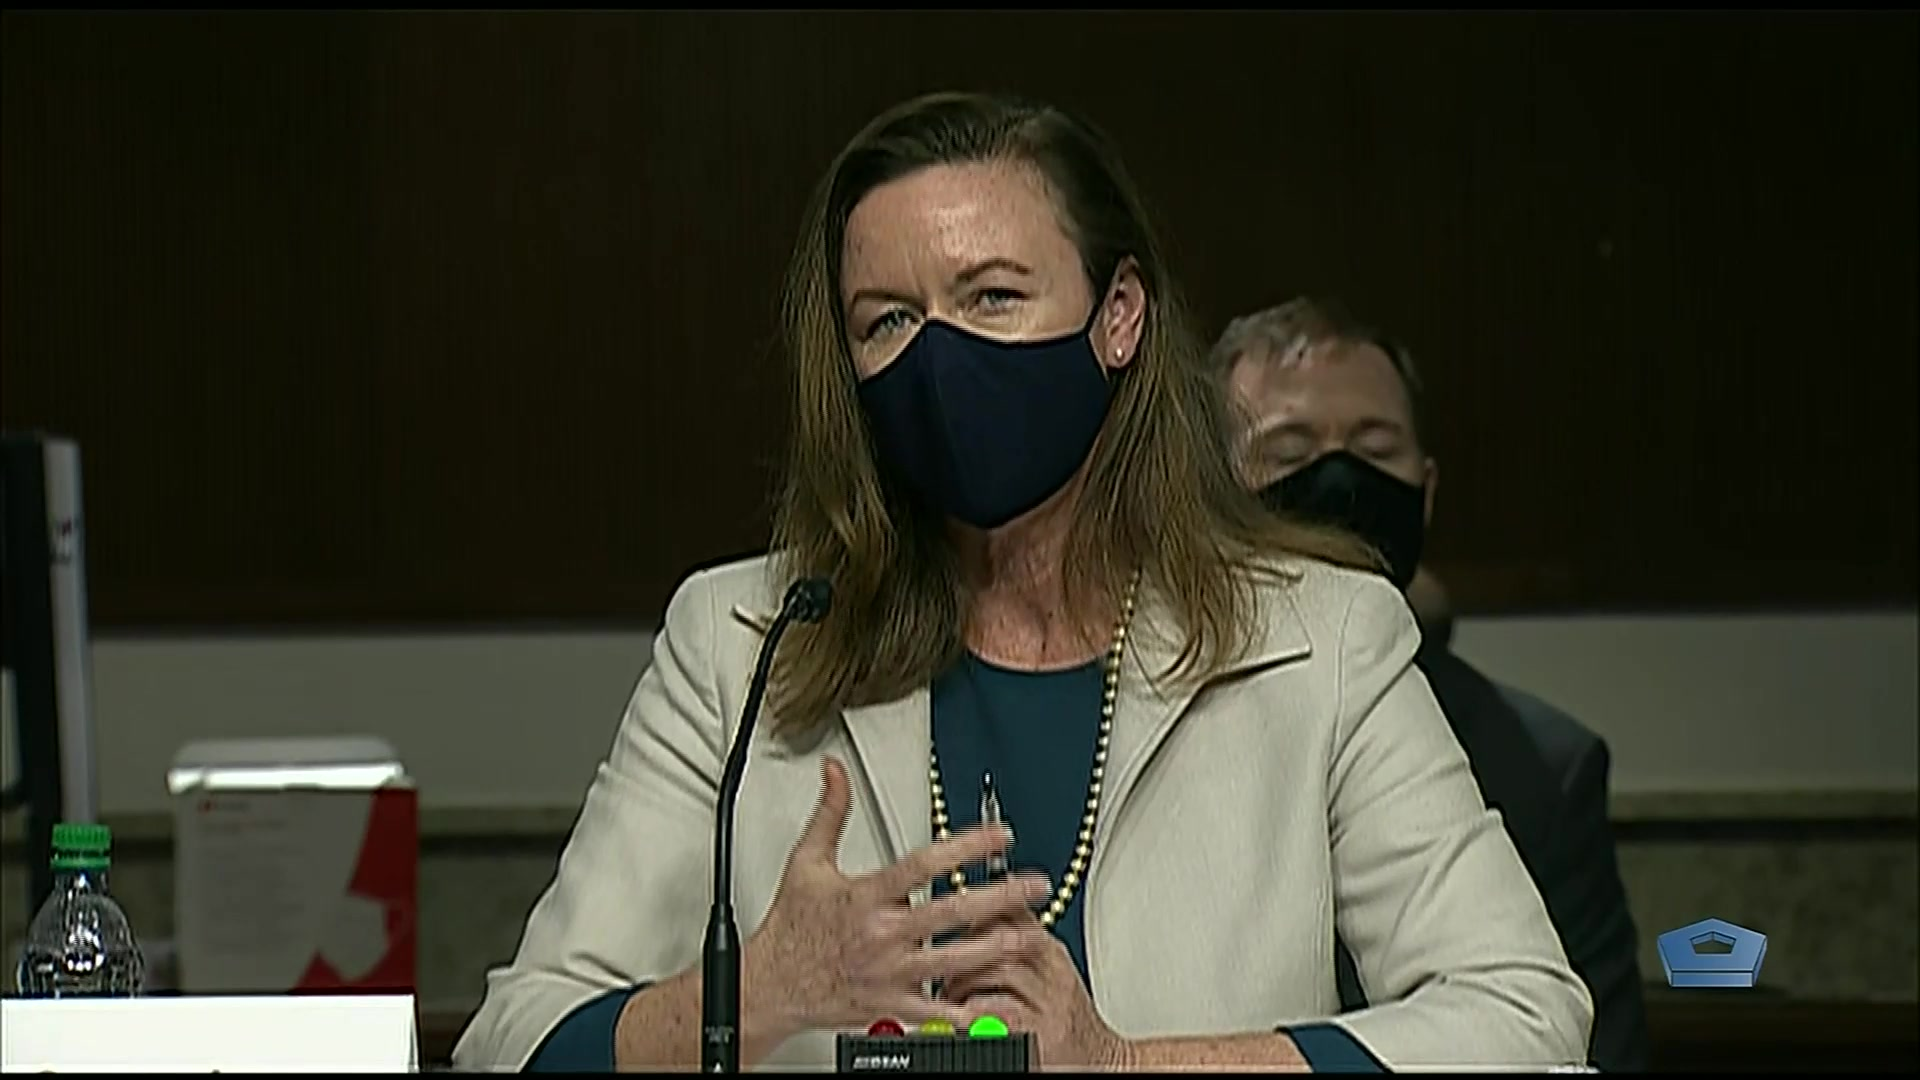 A civilian wearing a face mask sits and speaks.